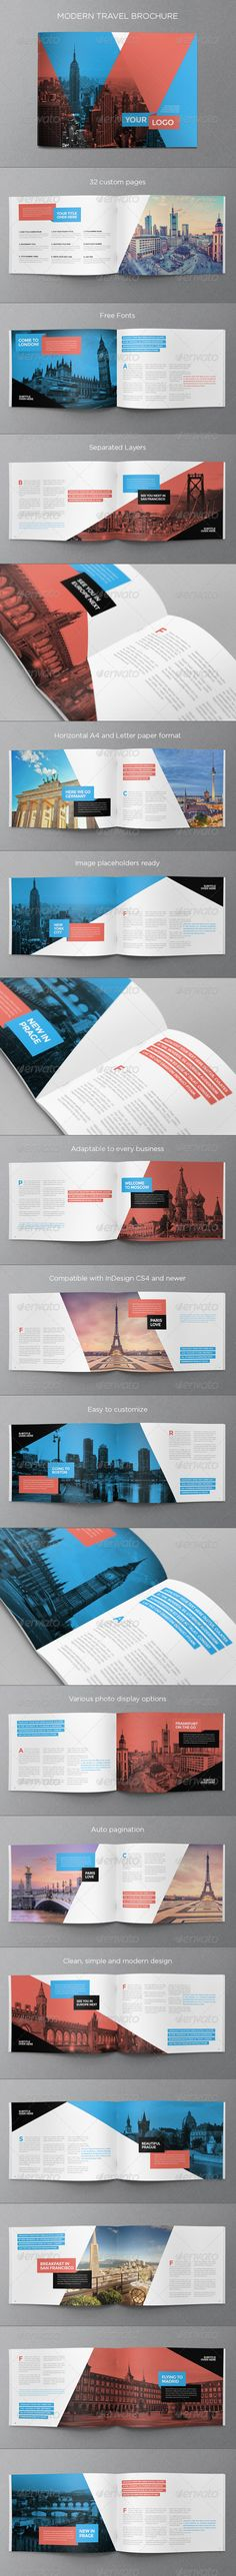 Travel Agency Brochure Catalog Indesign Template   Indesign